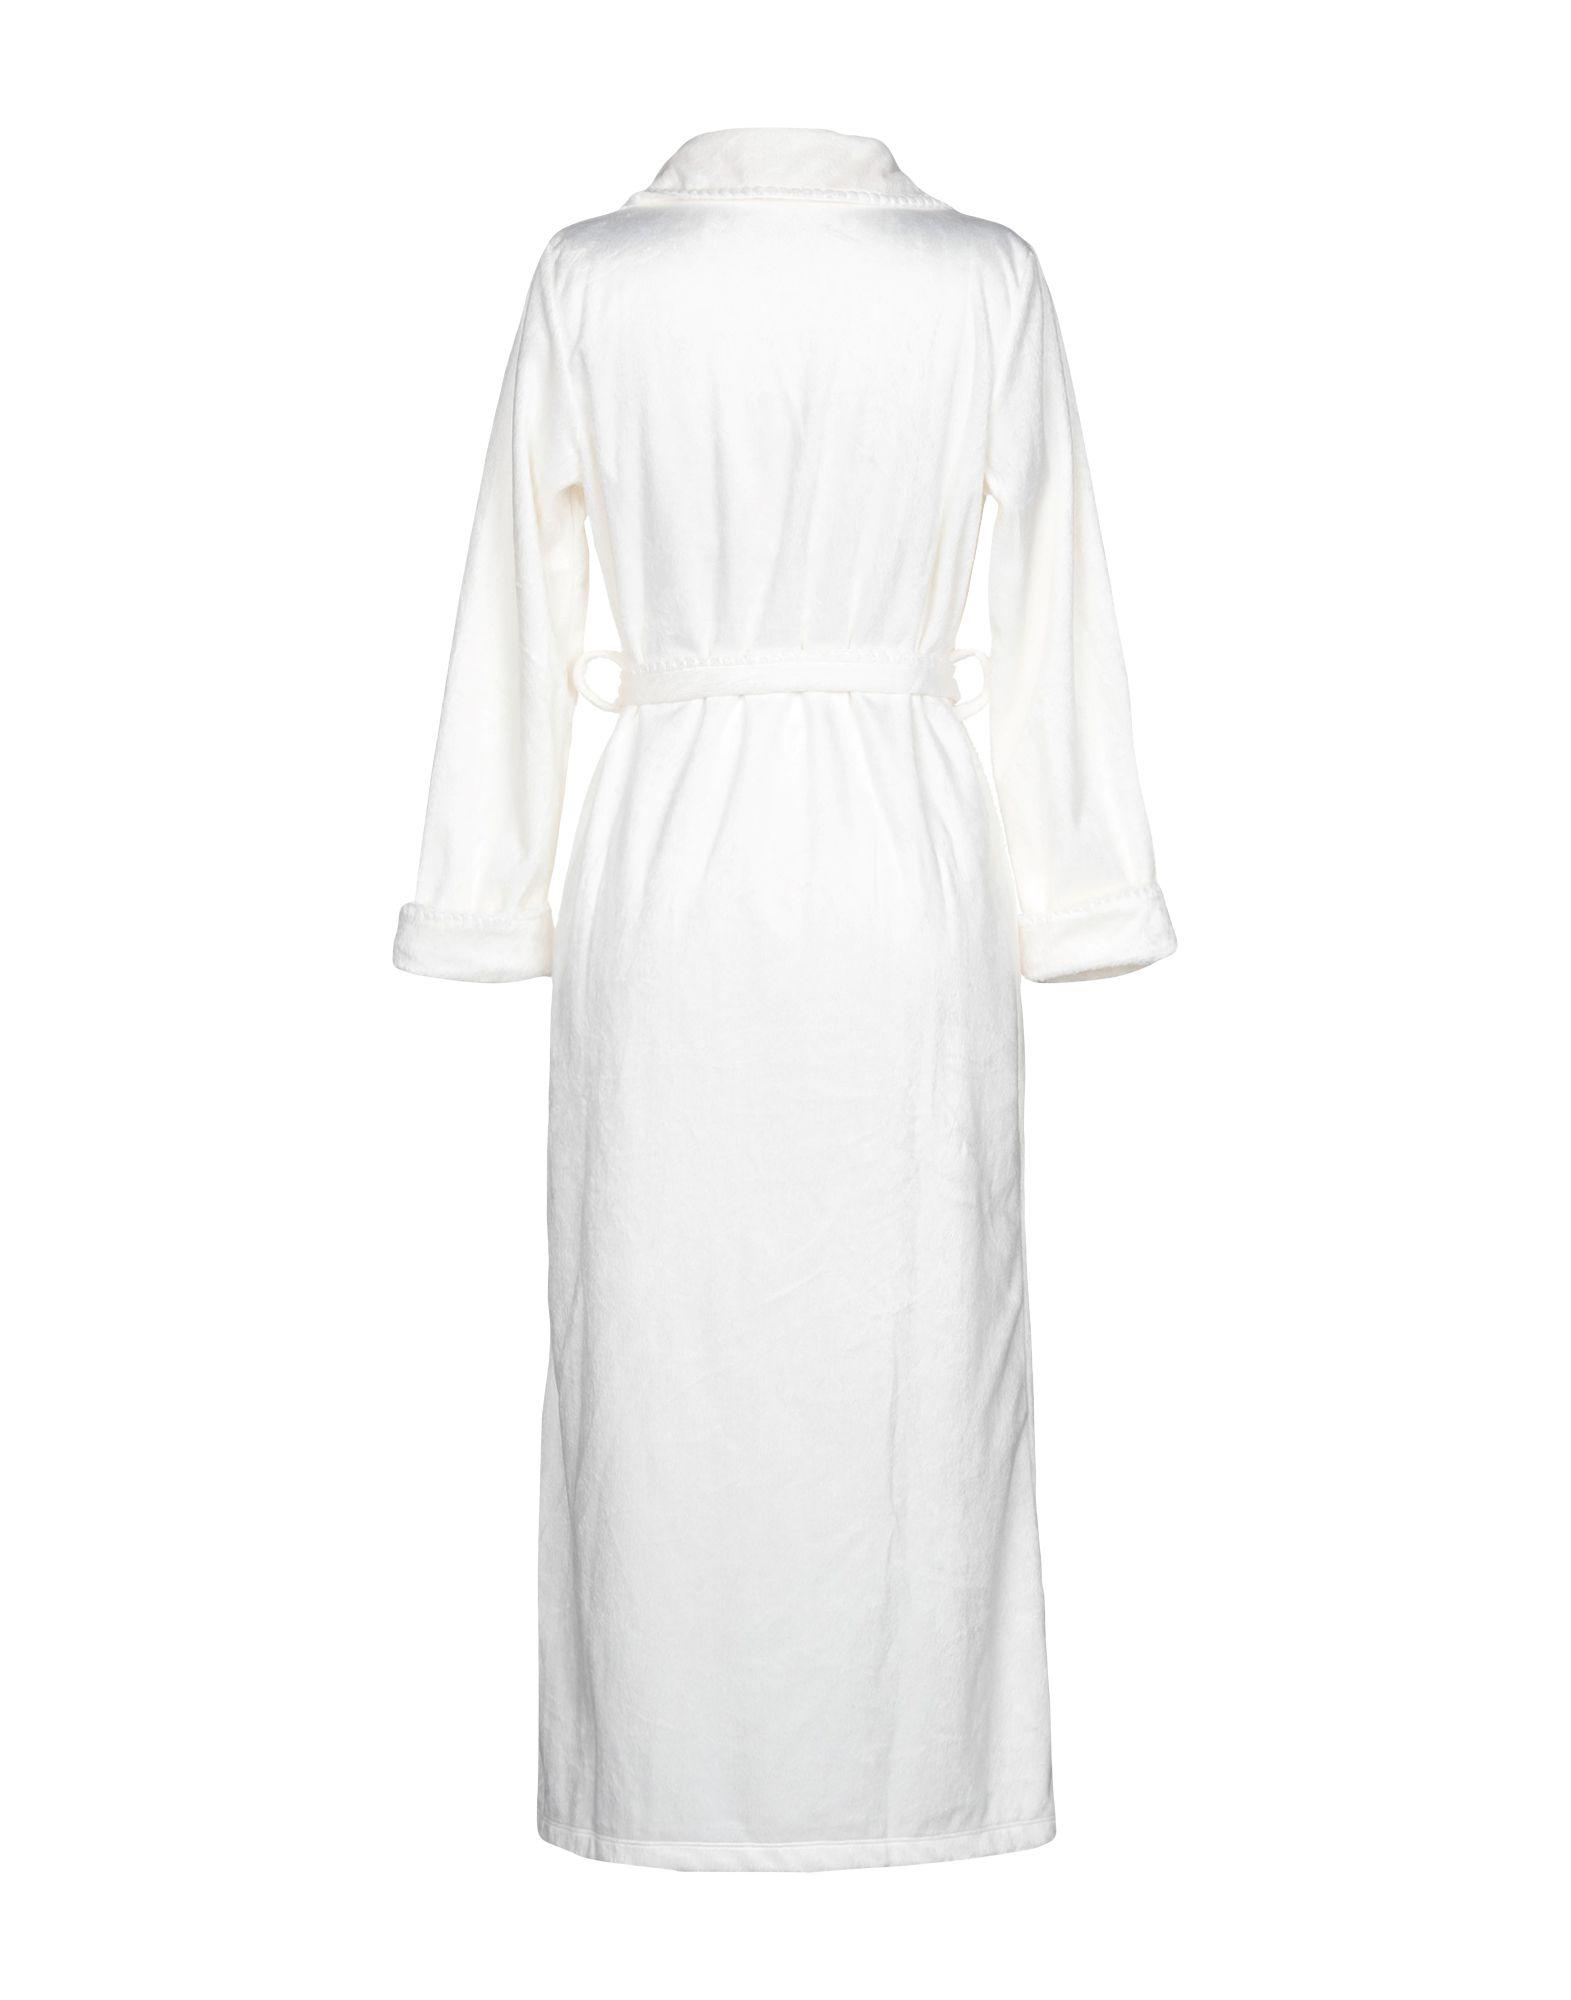 1ca6bad143 Vivis Dressing Gown in White - Lyst